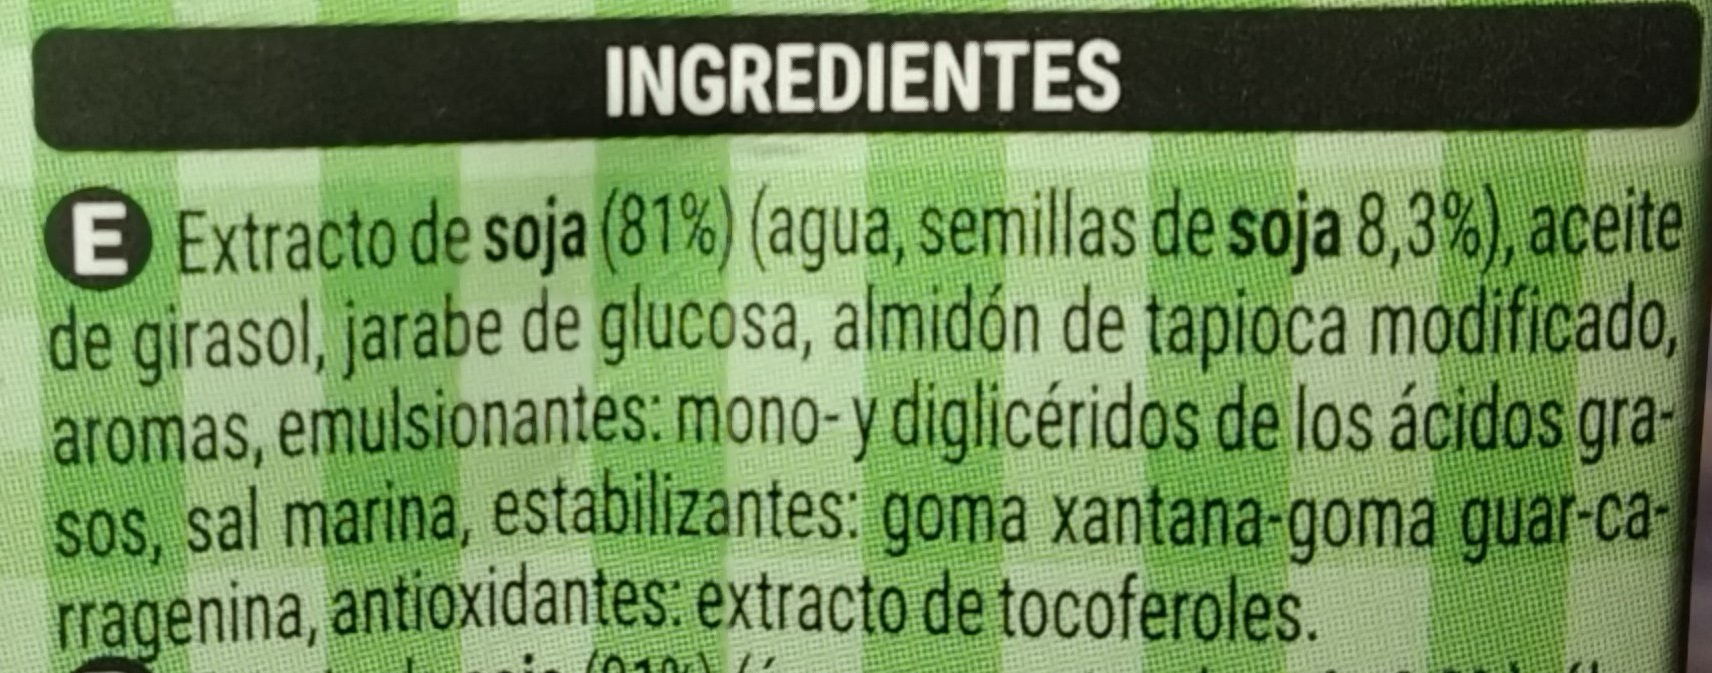 Crema de soja - Ingredients